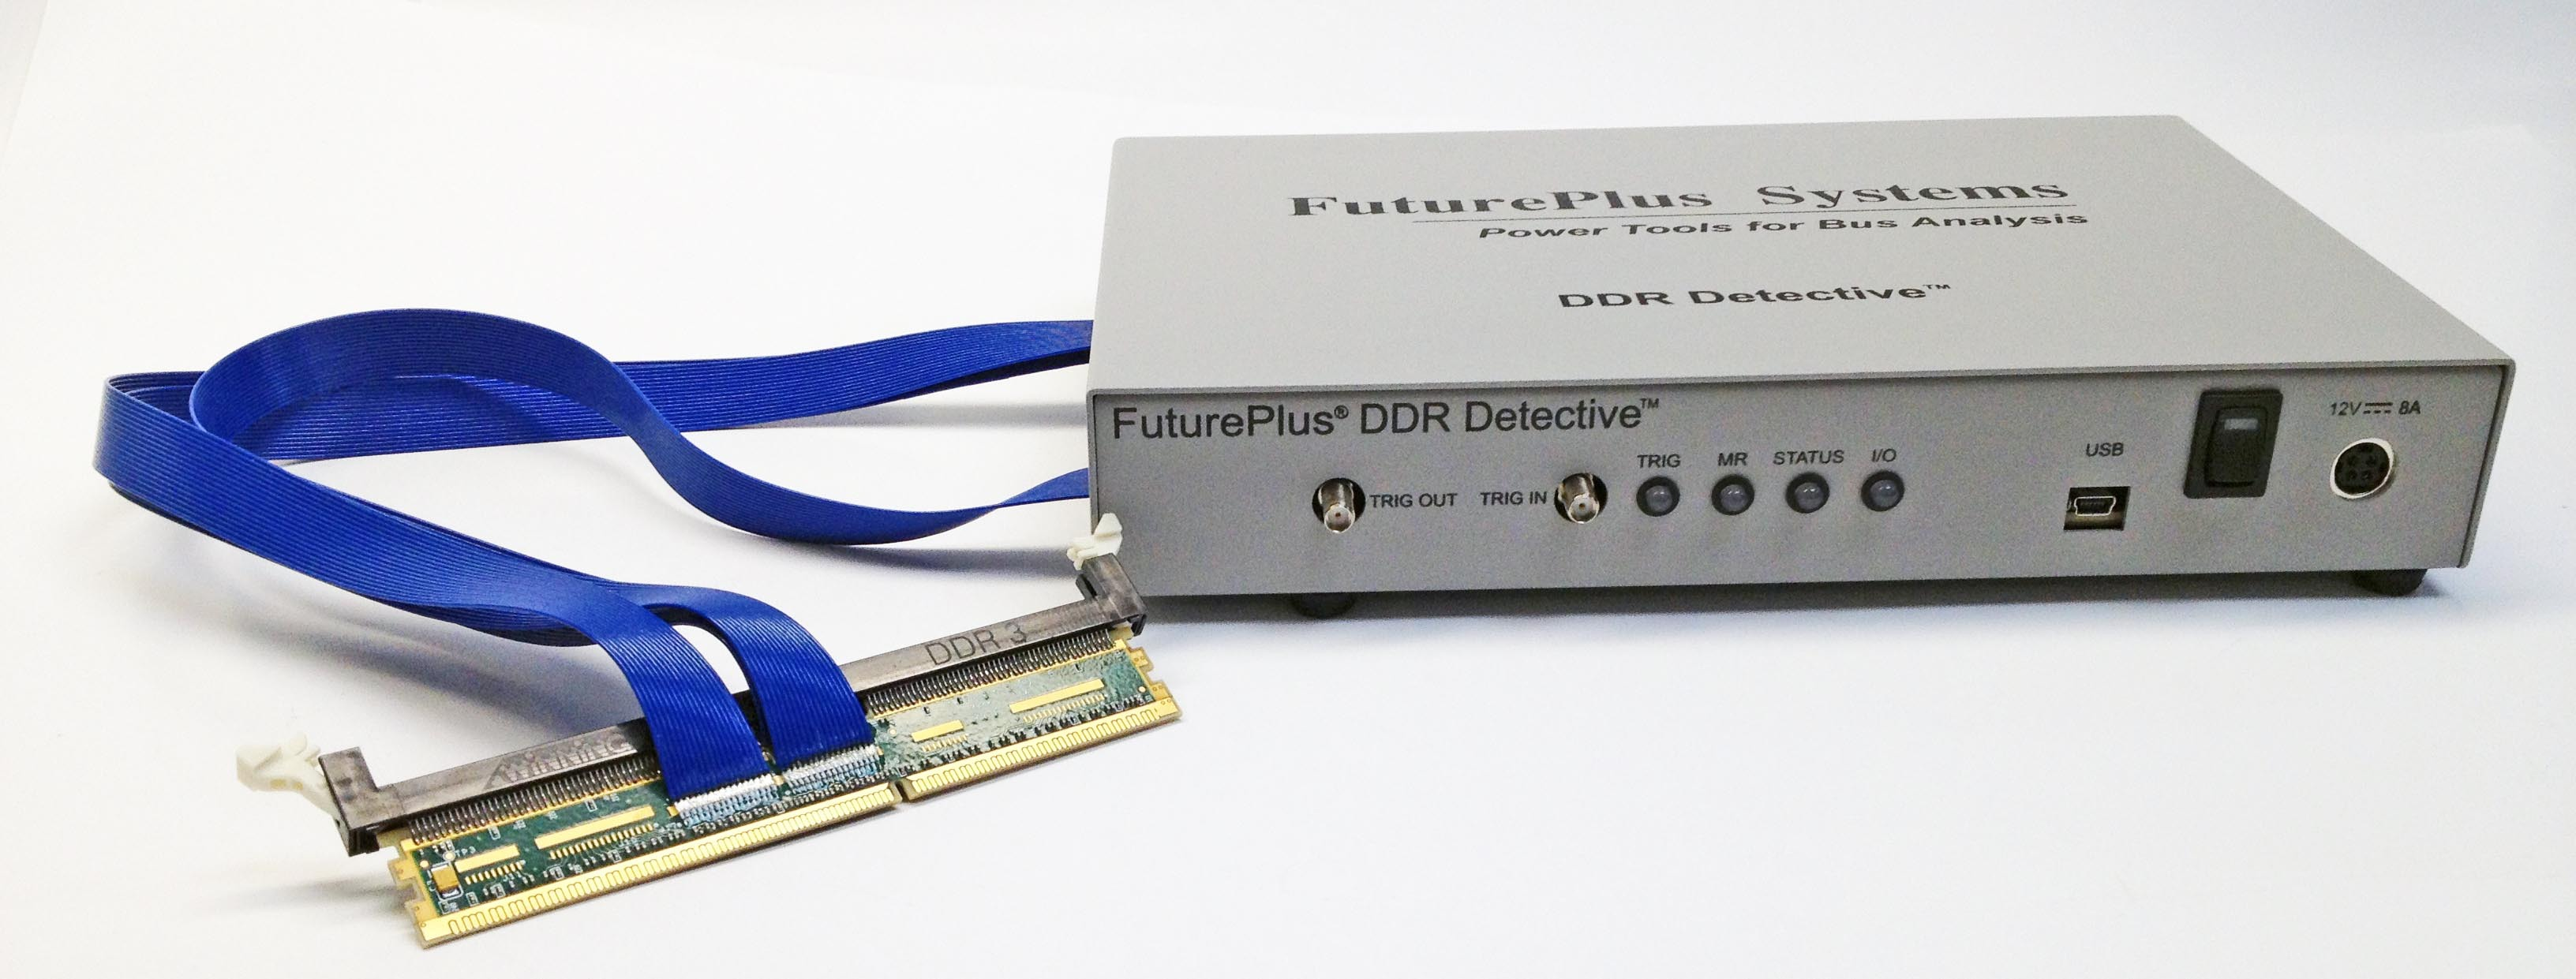 FS2800 DDR Detective from FuturePlus Systems (Photo: Business Wire)